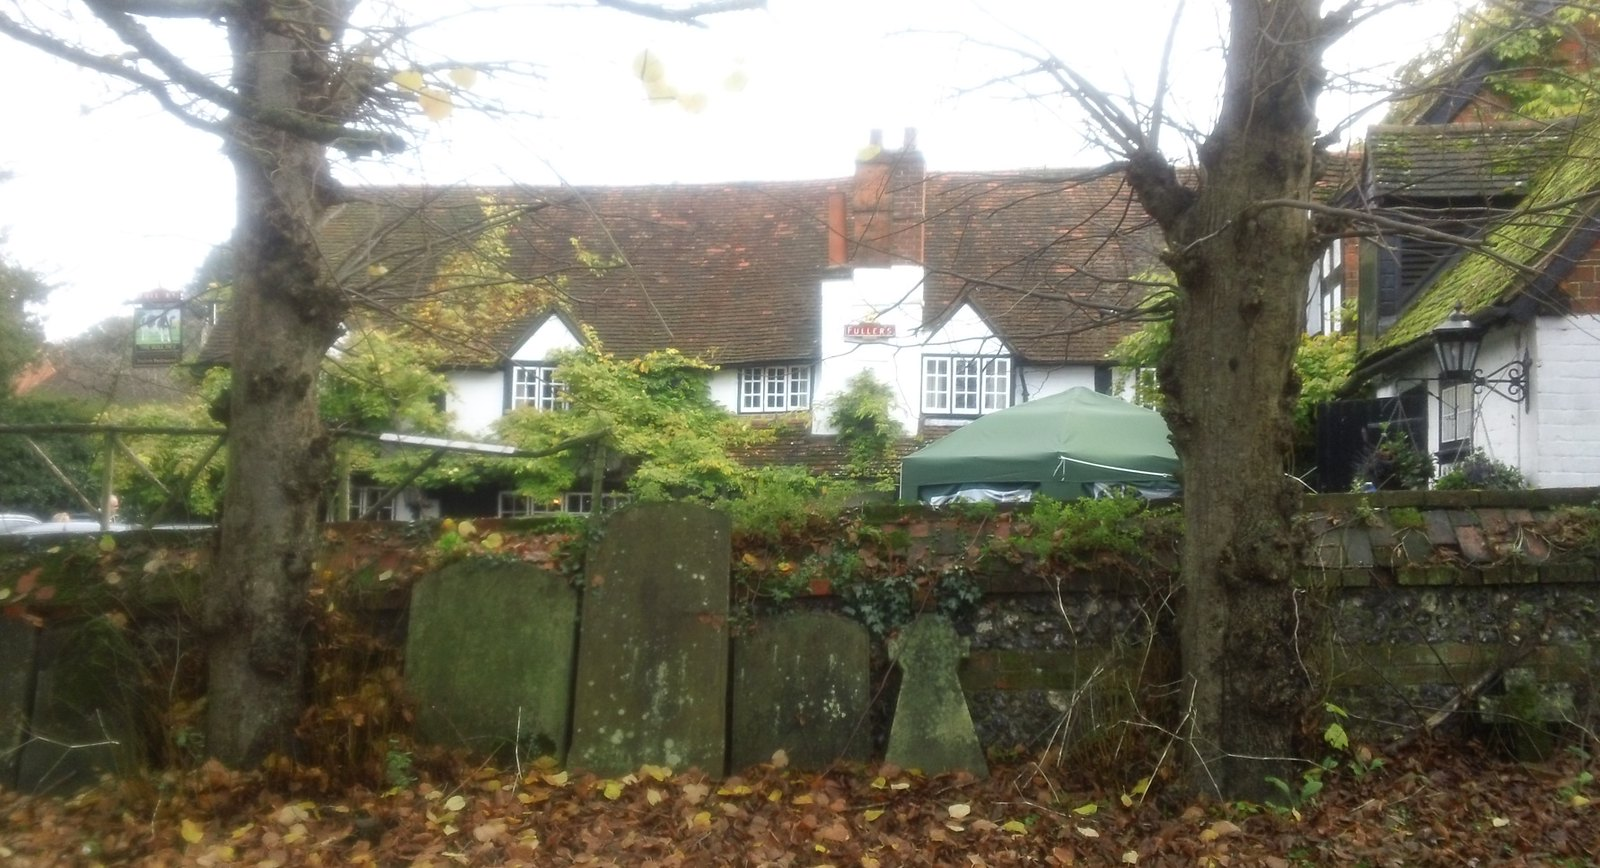 The Bull, Sonning from church graveyard - where you will end up sooner rather later if you spend too much time drinking in the pub.